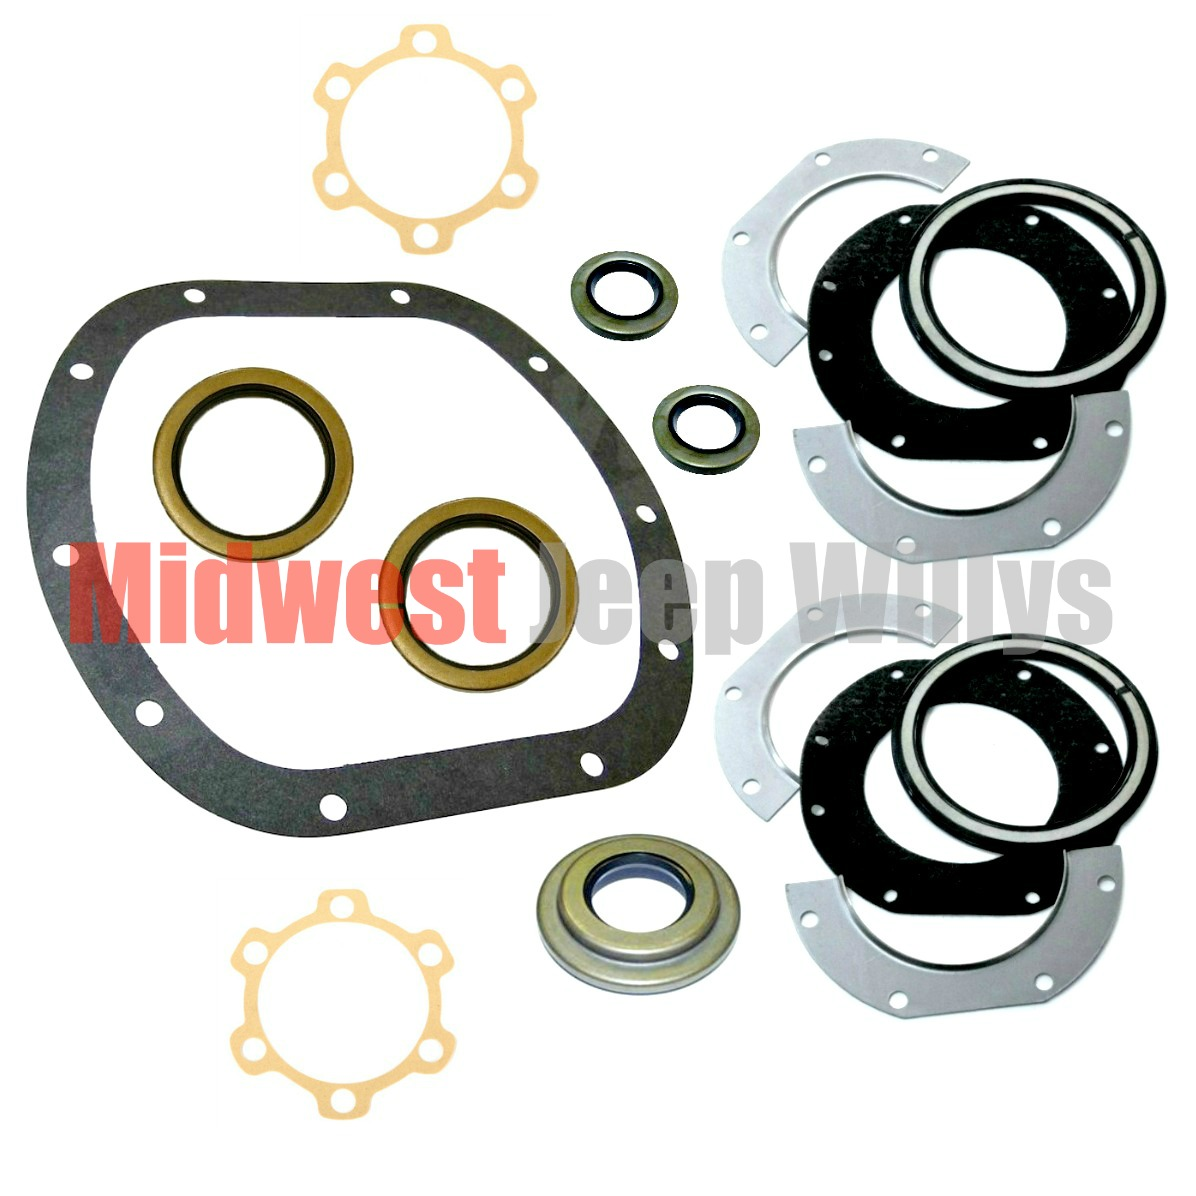 Dana 25 27 Axle Gasket And Seal Kit For 1941 1966 Jeep To 1952 Willys Models